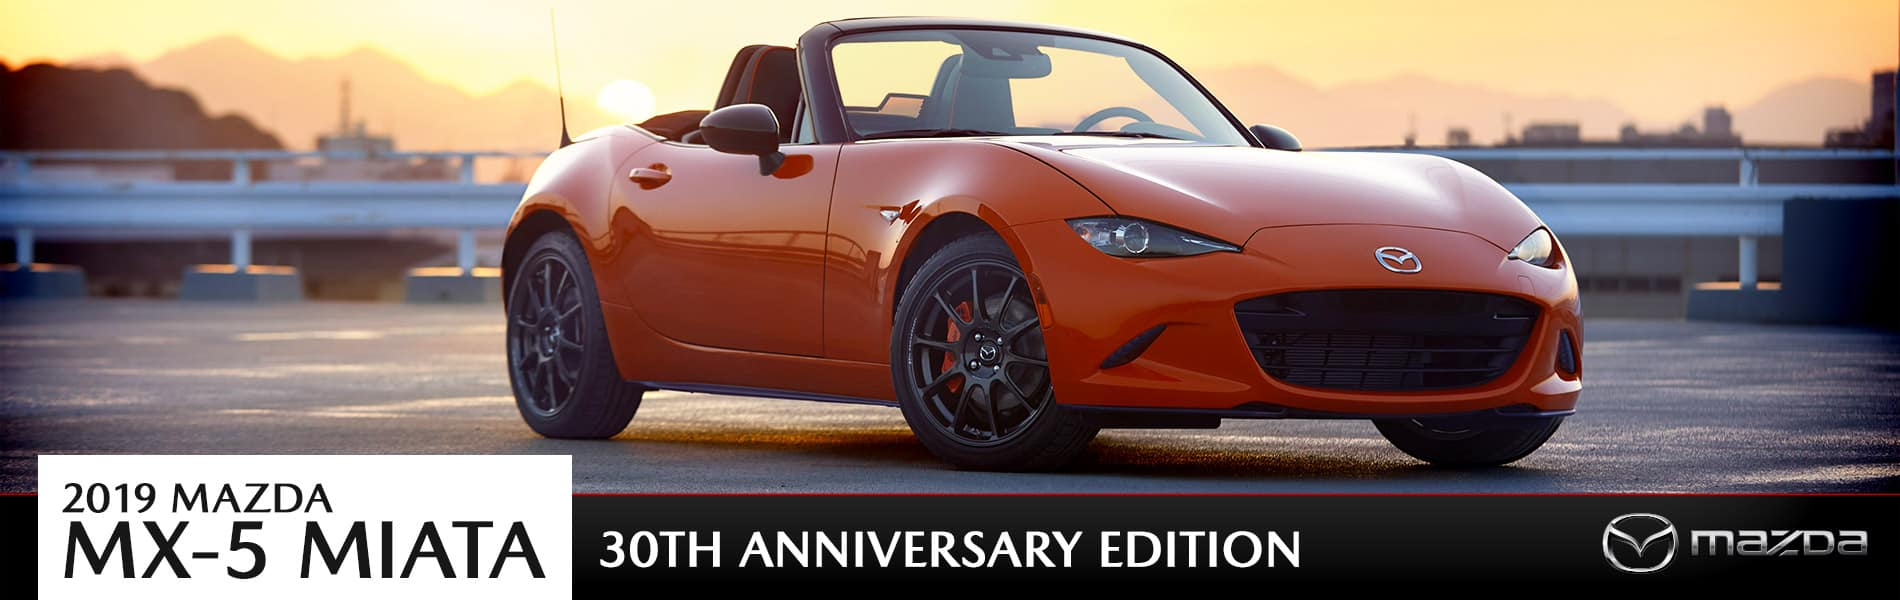 The 2019 Mazda MX-5 Miata 30th Anniversary hits the road soon in Cleveland